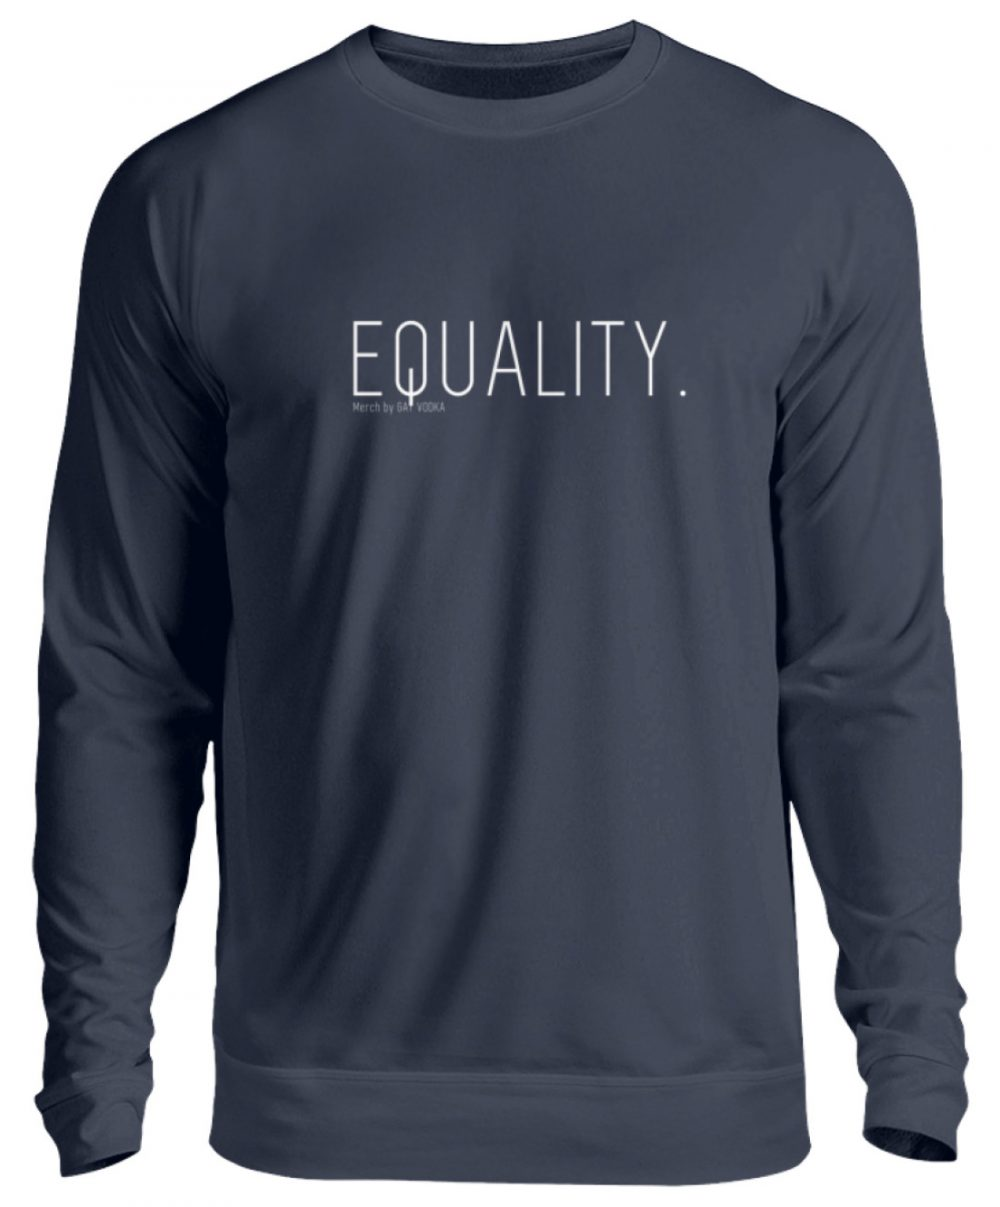 EQUALITY. - Unisex Pullover-1698